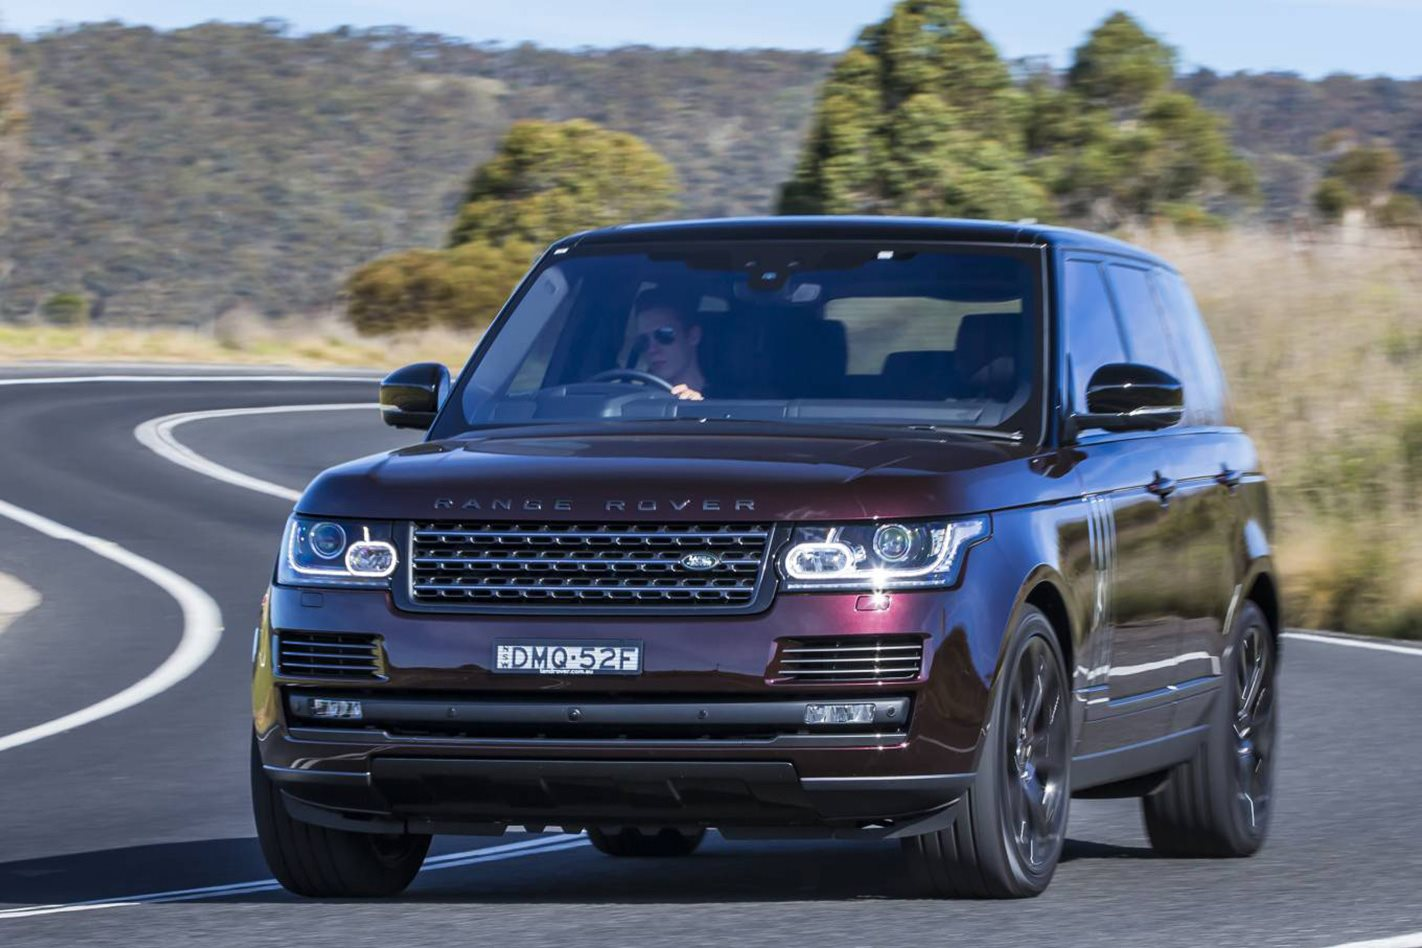 2018 Range Rover Line Up Confirmed For Australia